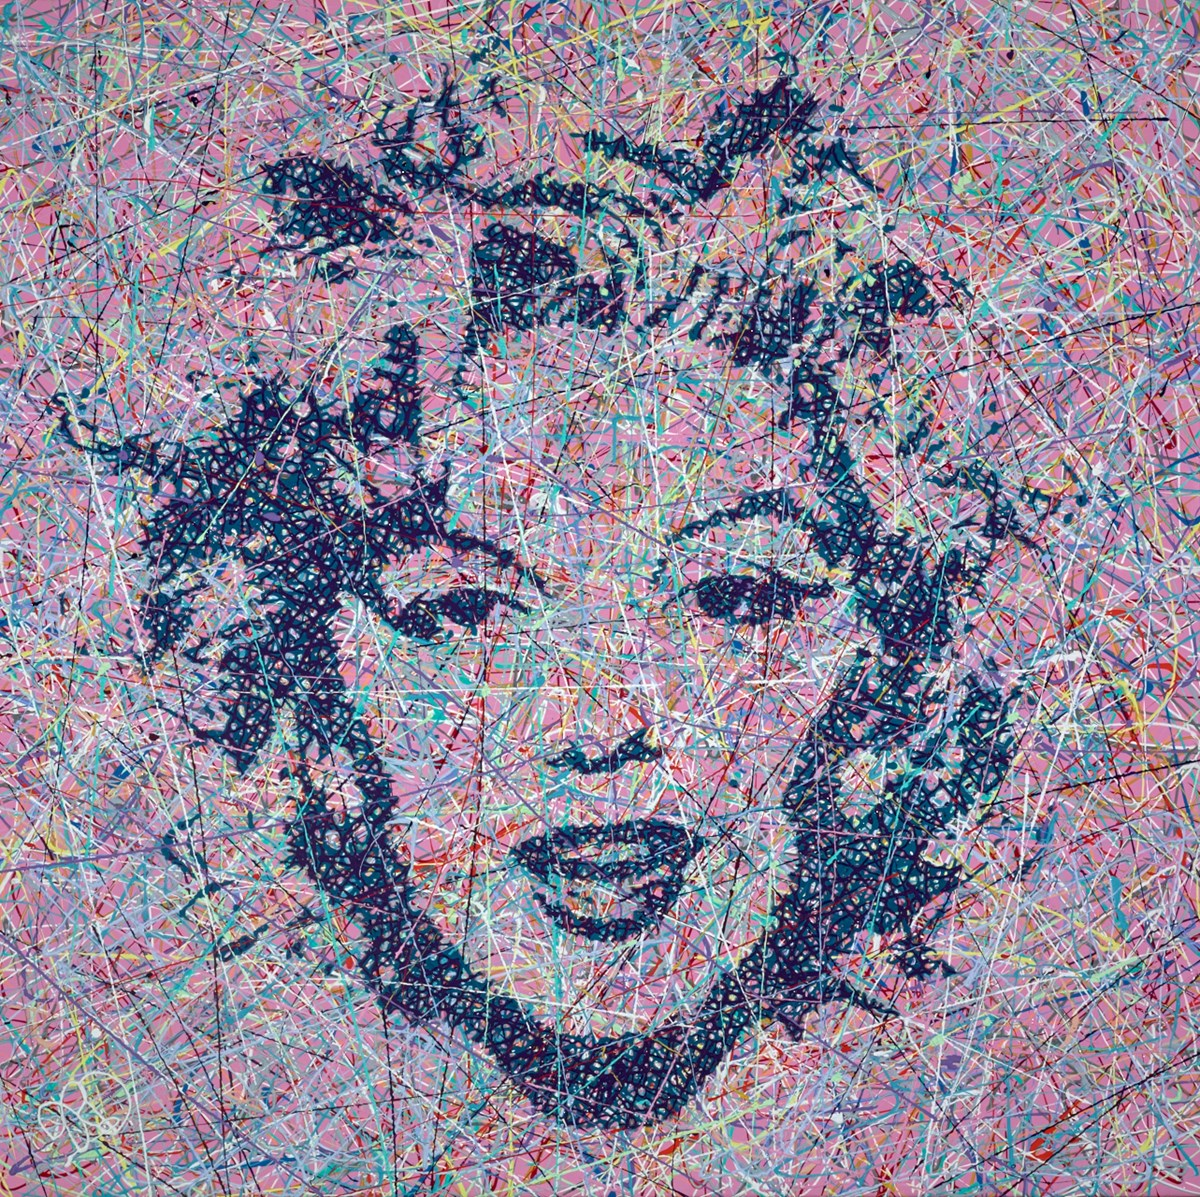 Dizzy Blonde by jim dowie -  sized 36x36 inches. Available from Whitewall Galleries